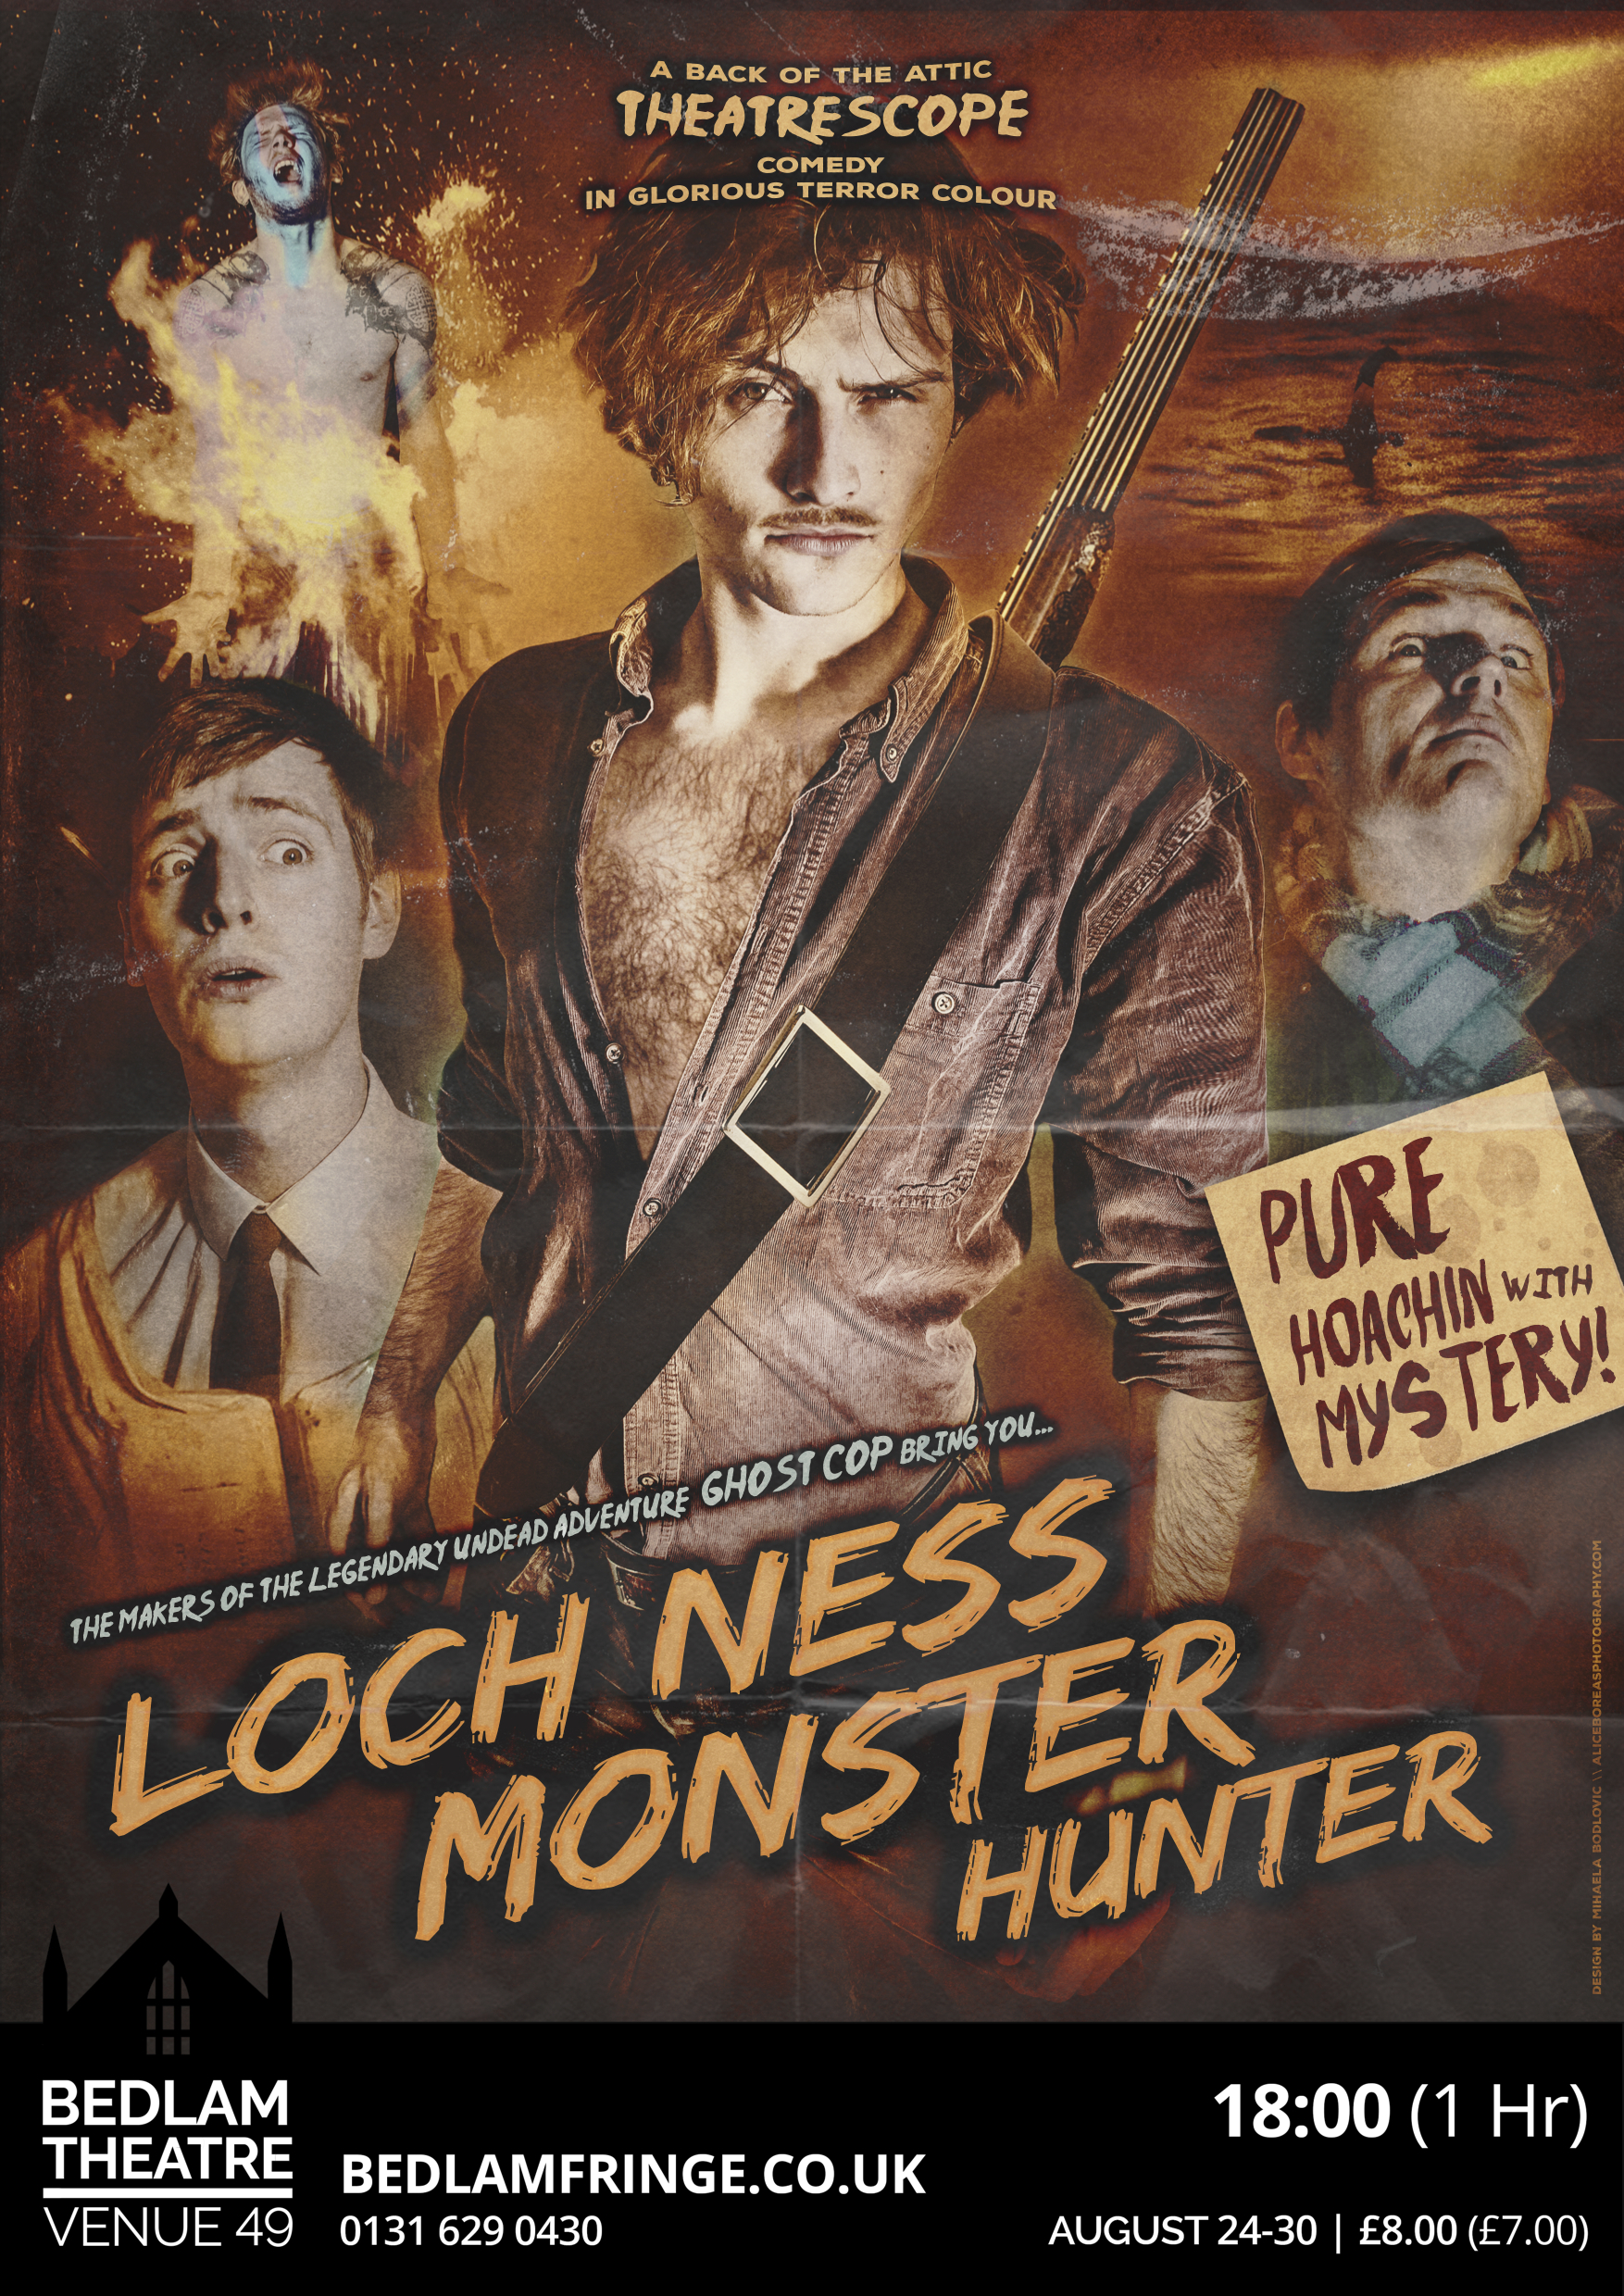 Loch Ness Monster Hunter Poster. Design by Mihaela Bodlovic: http://www.aliceboreasphotography.com/